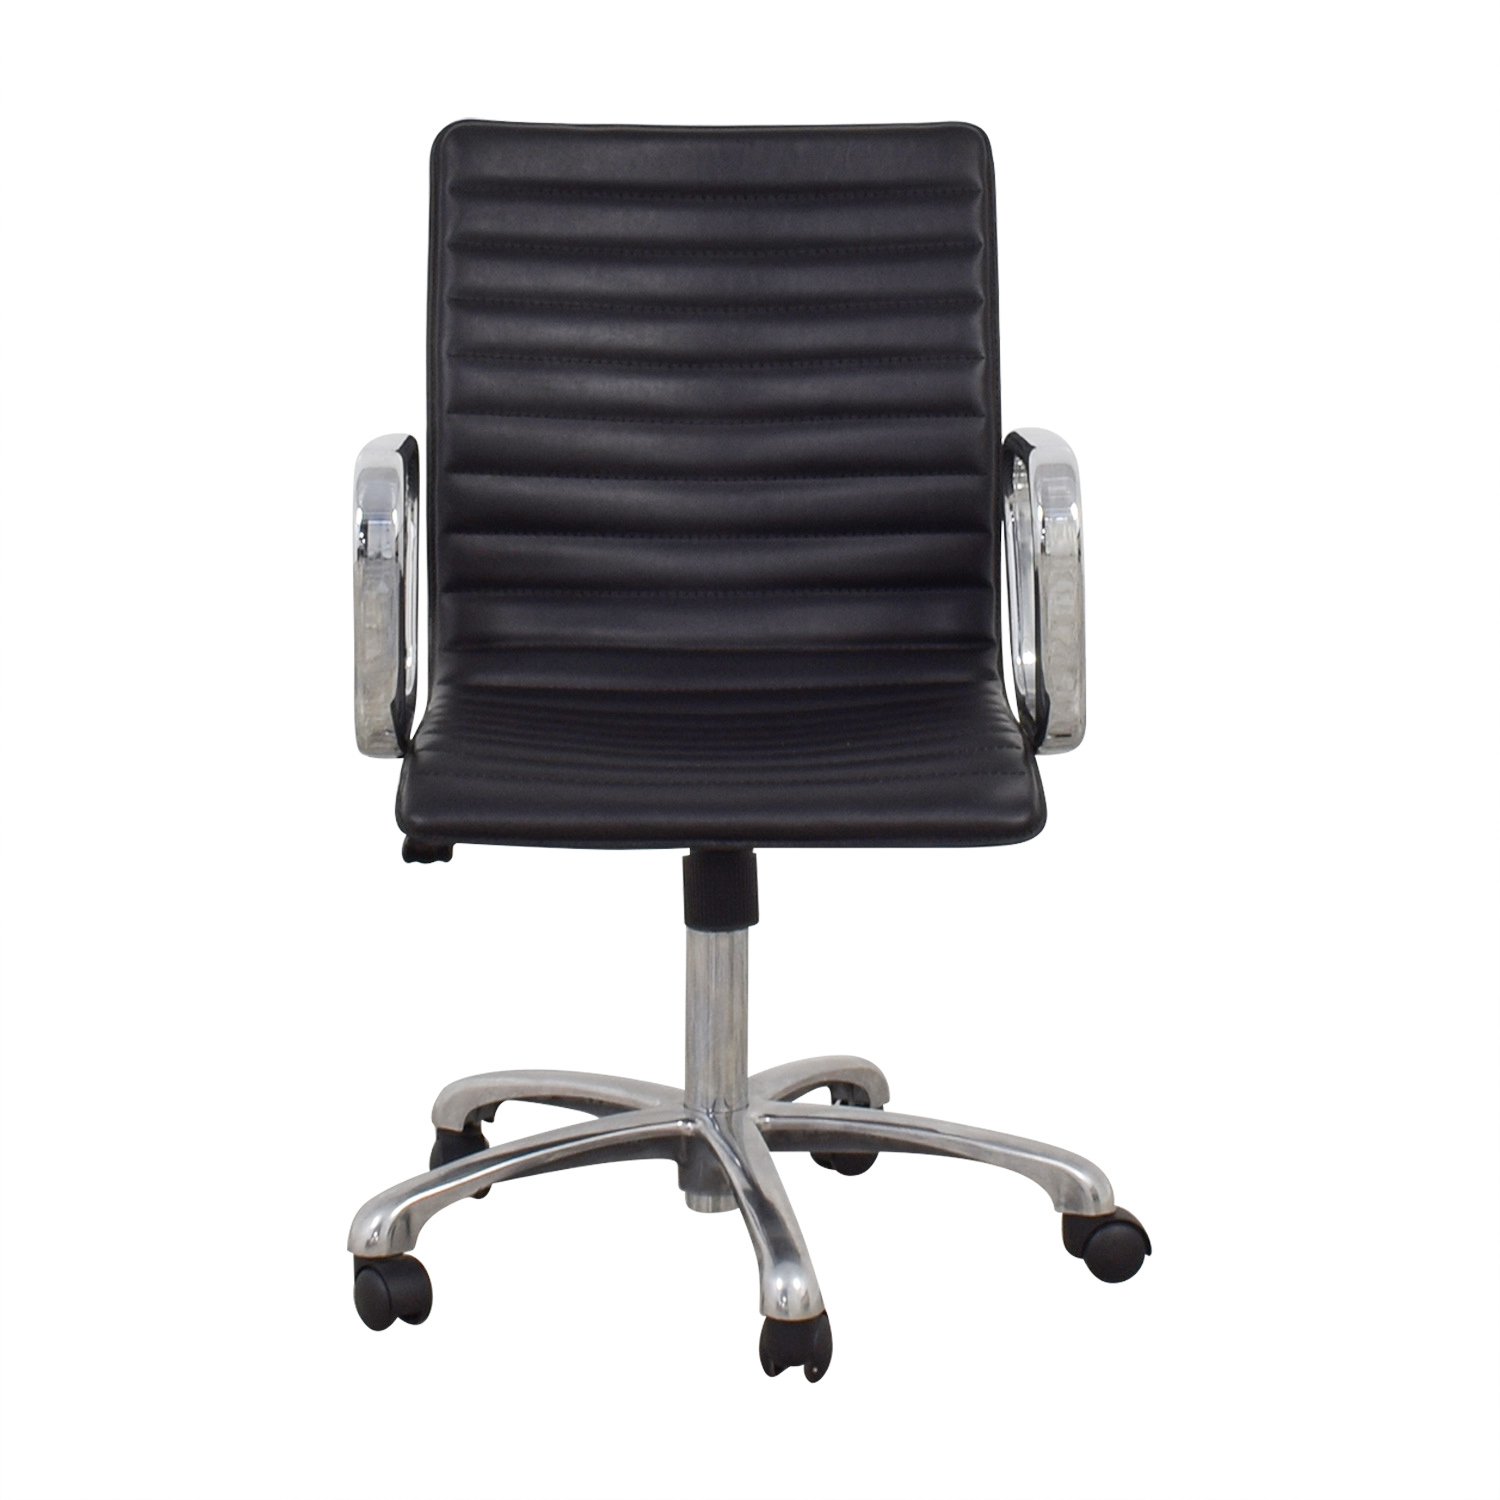 shop  Black Leather Desk Chair online